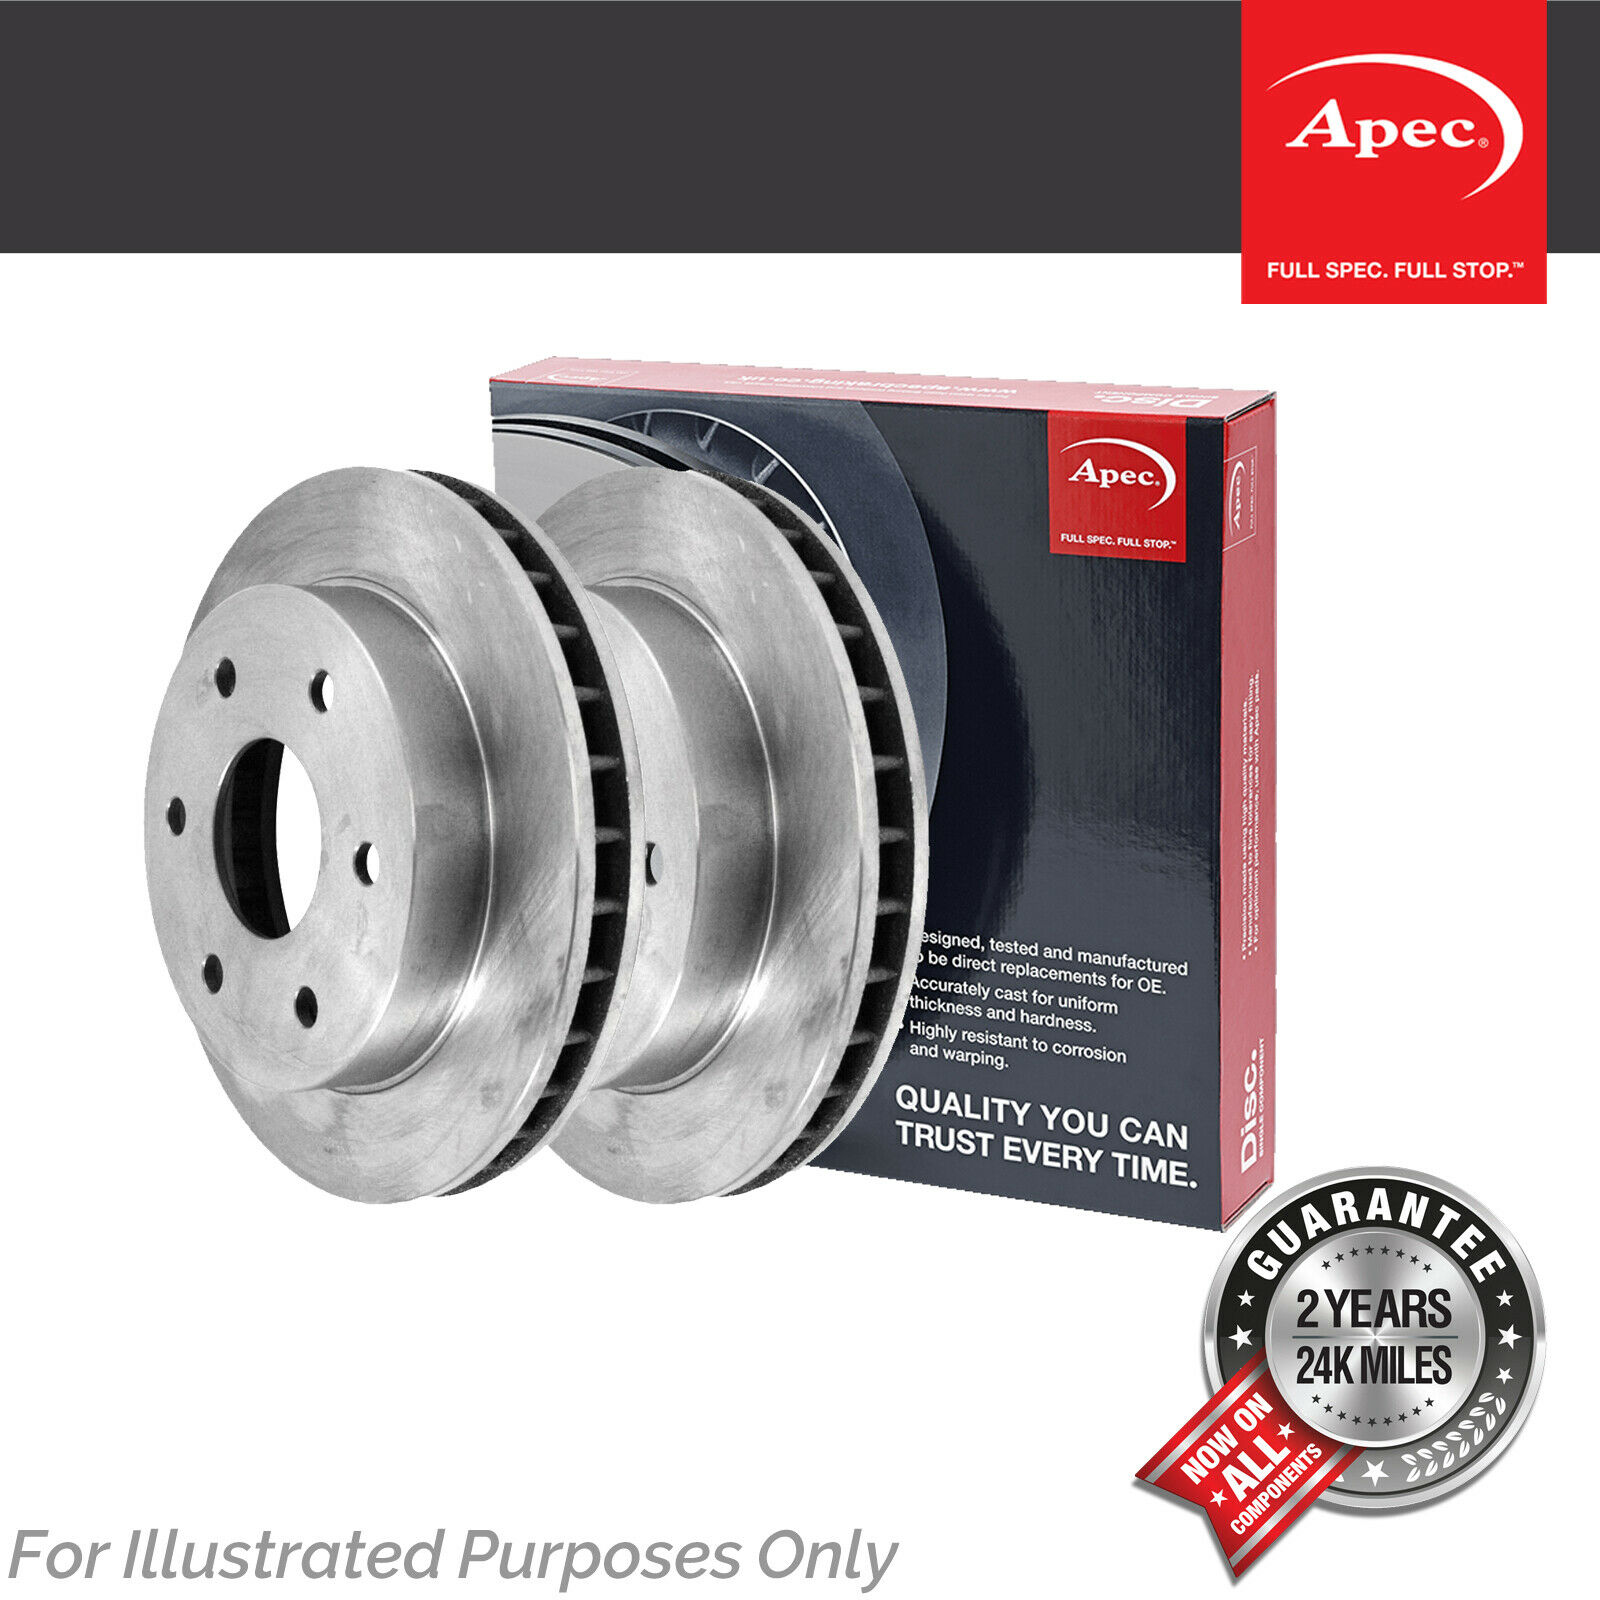 DSK3137 Genuine OE Quality Apec Front Vented Brake Discs